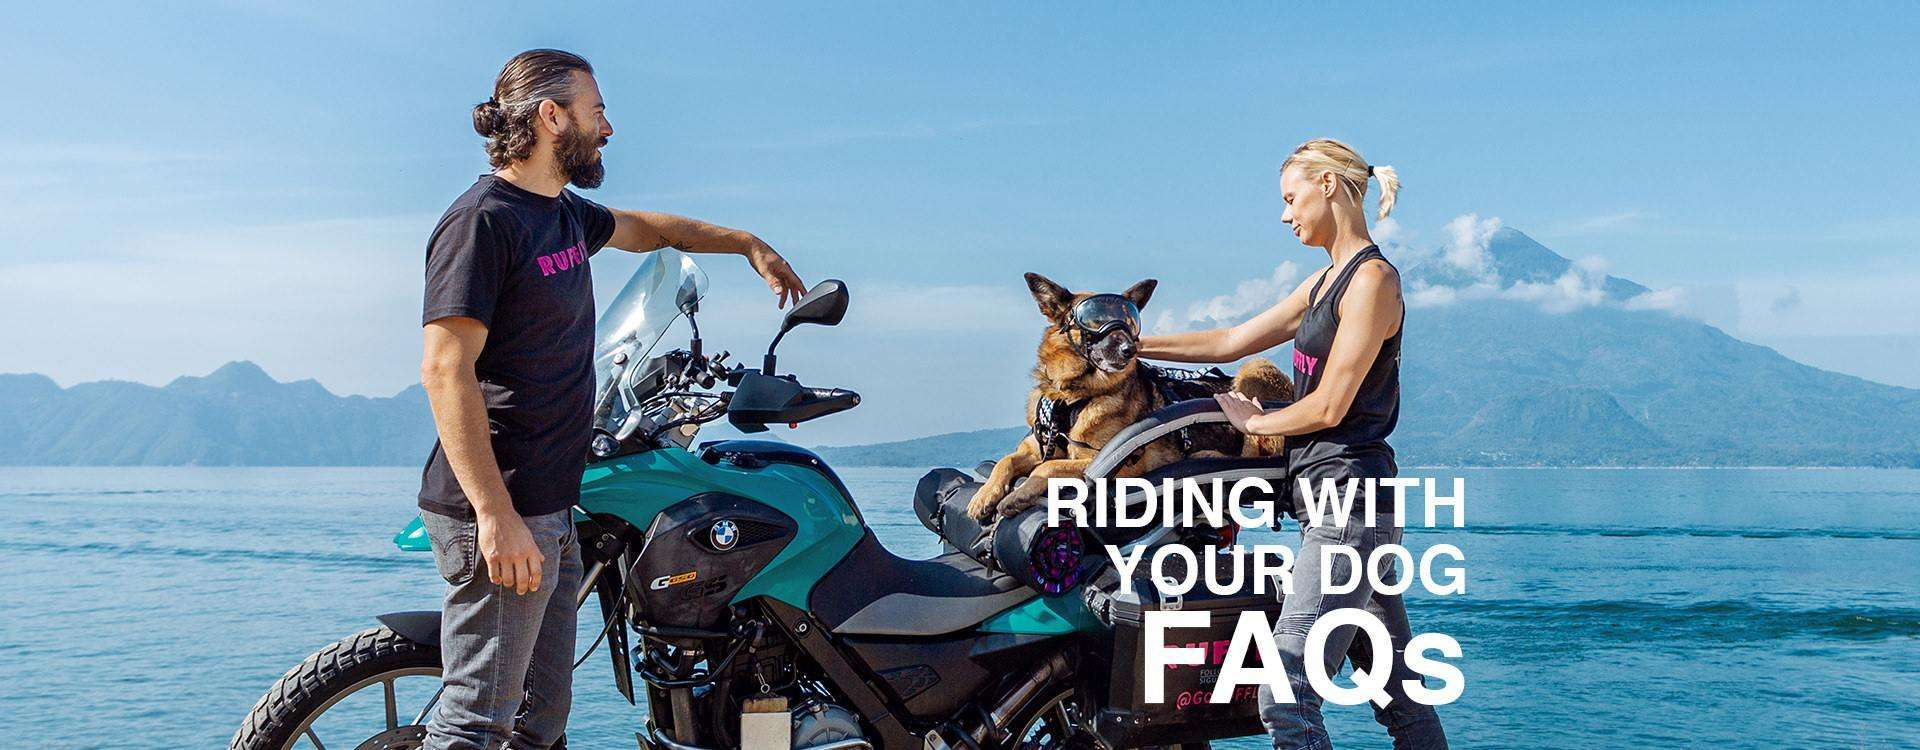 """Man and woman stand beside BMW adventure motorcycle with German Shepherd in motorcycle dog carrier and lake with volcanoes background and overlaid text: """"RIDING WITH YOUR DOG FAQs"""""""